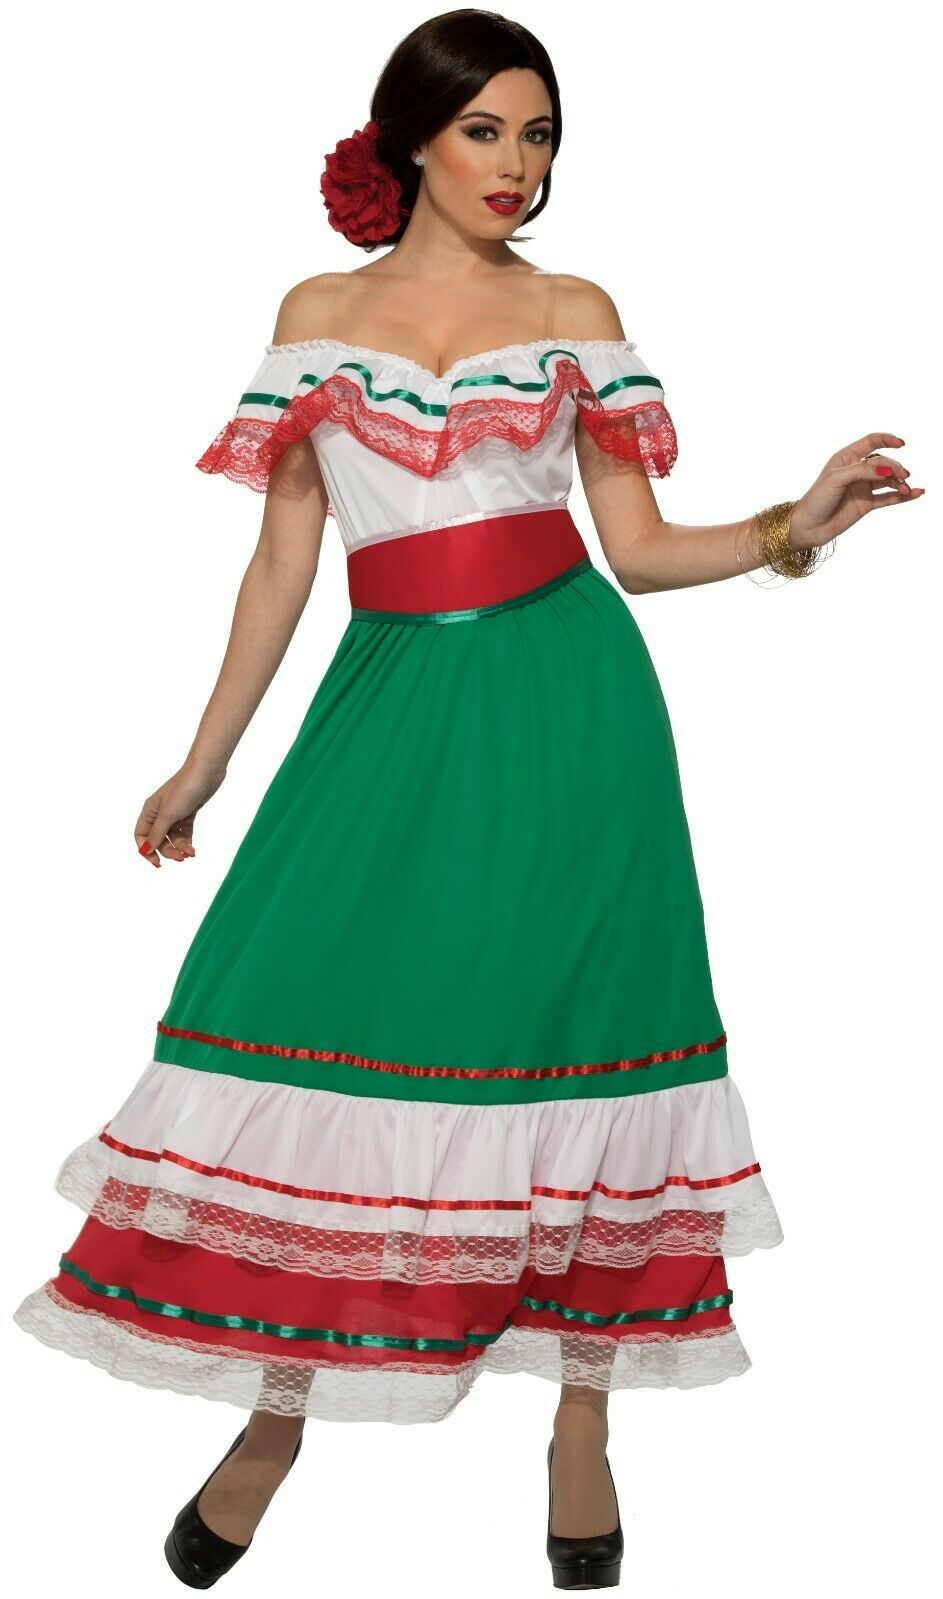 Primary image for Forum Novelties Fiesta Mexican Party Dress Adult Womens Halloween Costume 84729